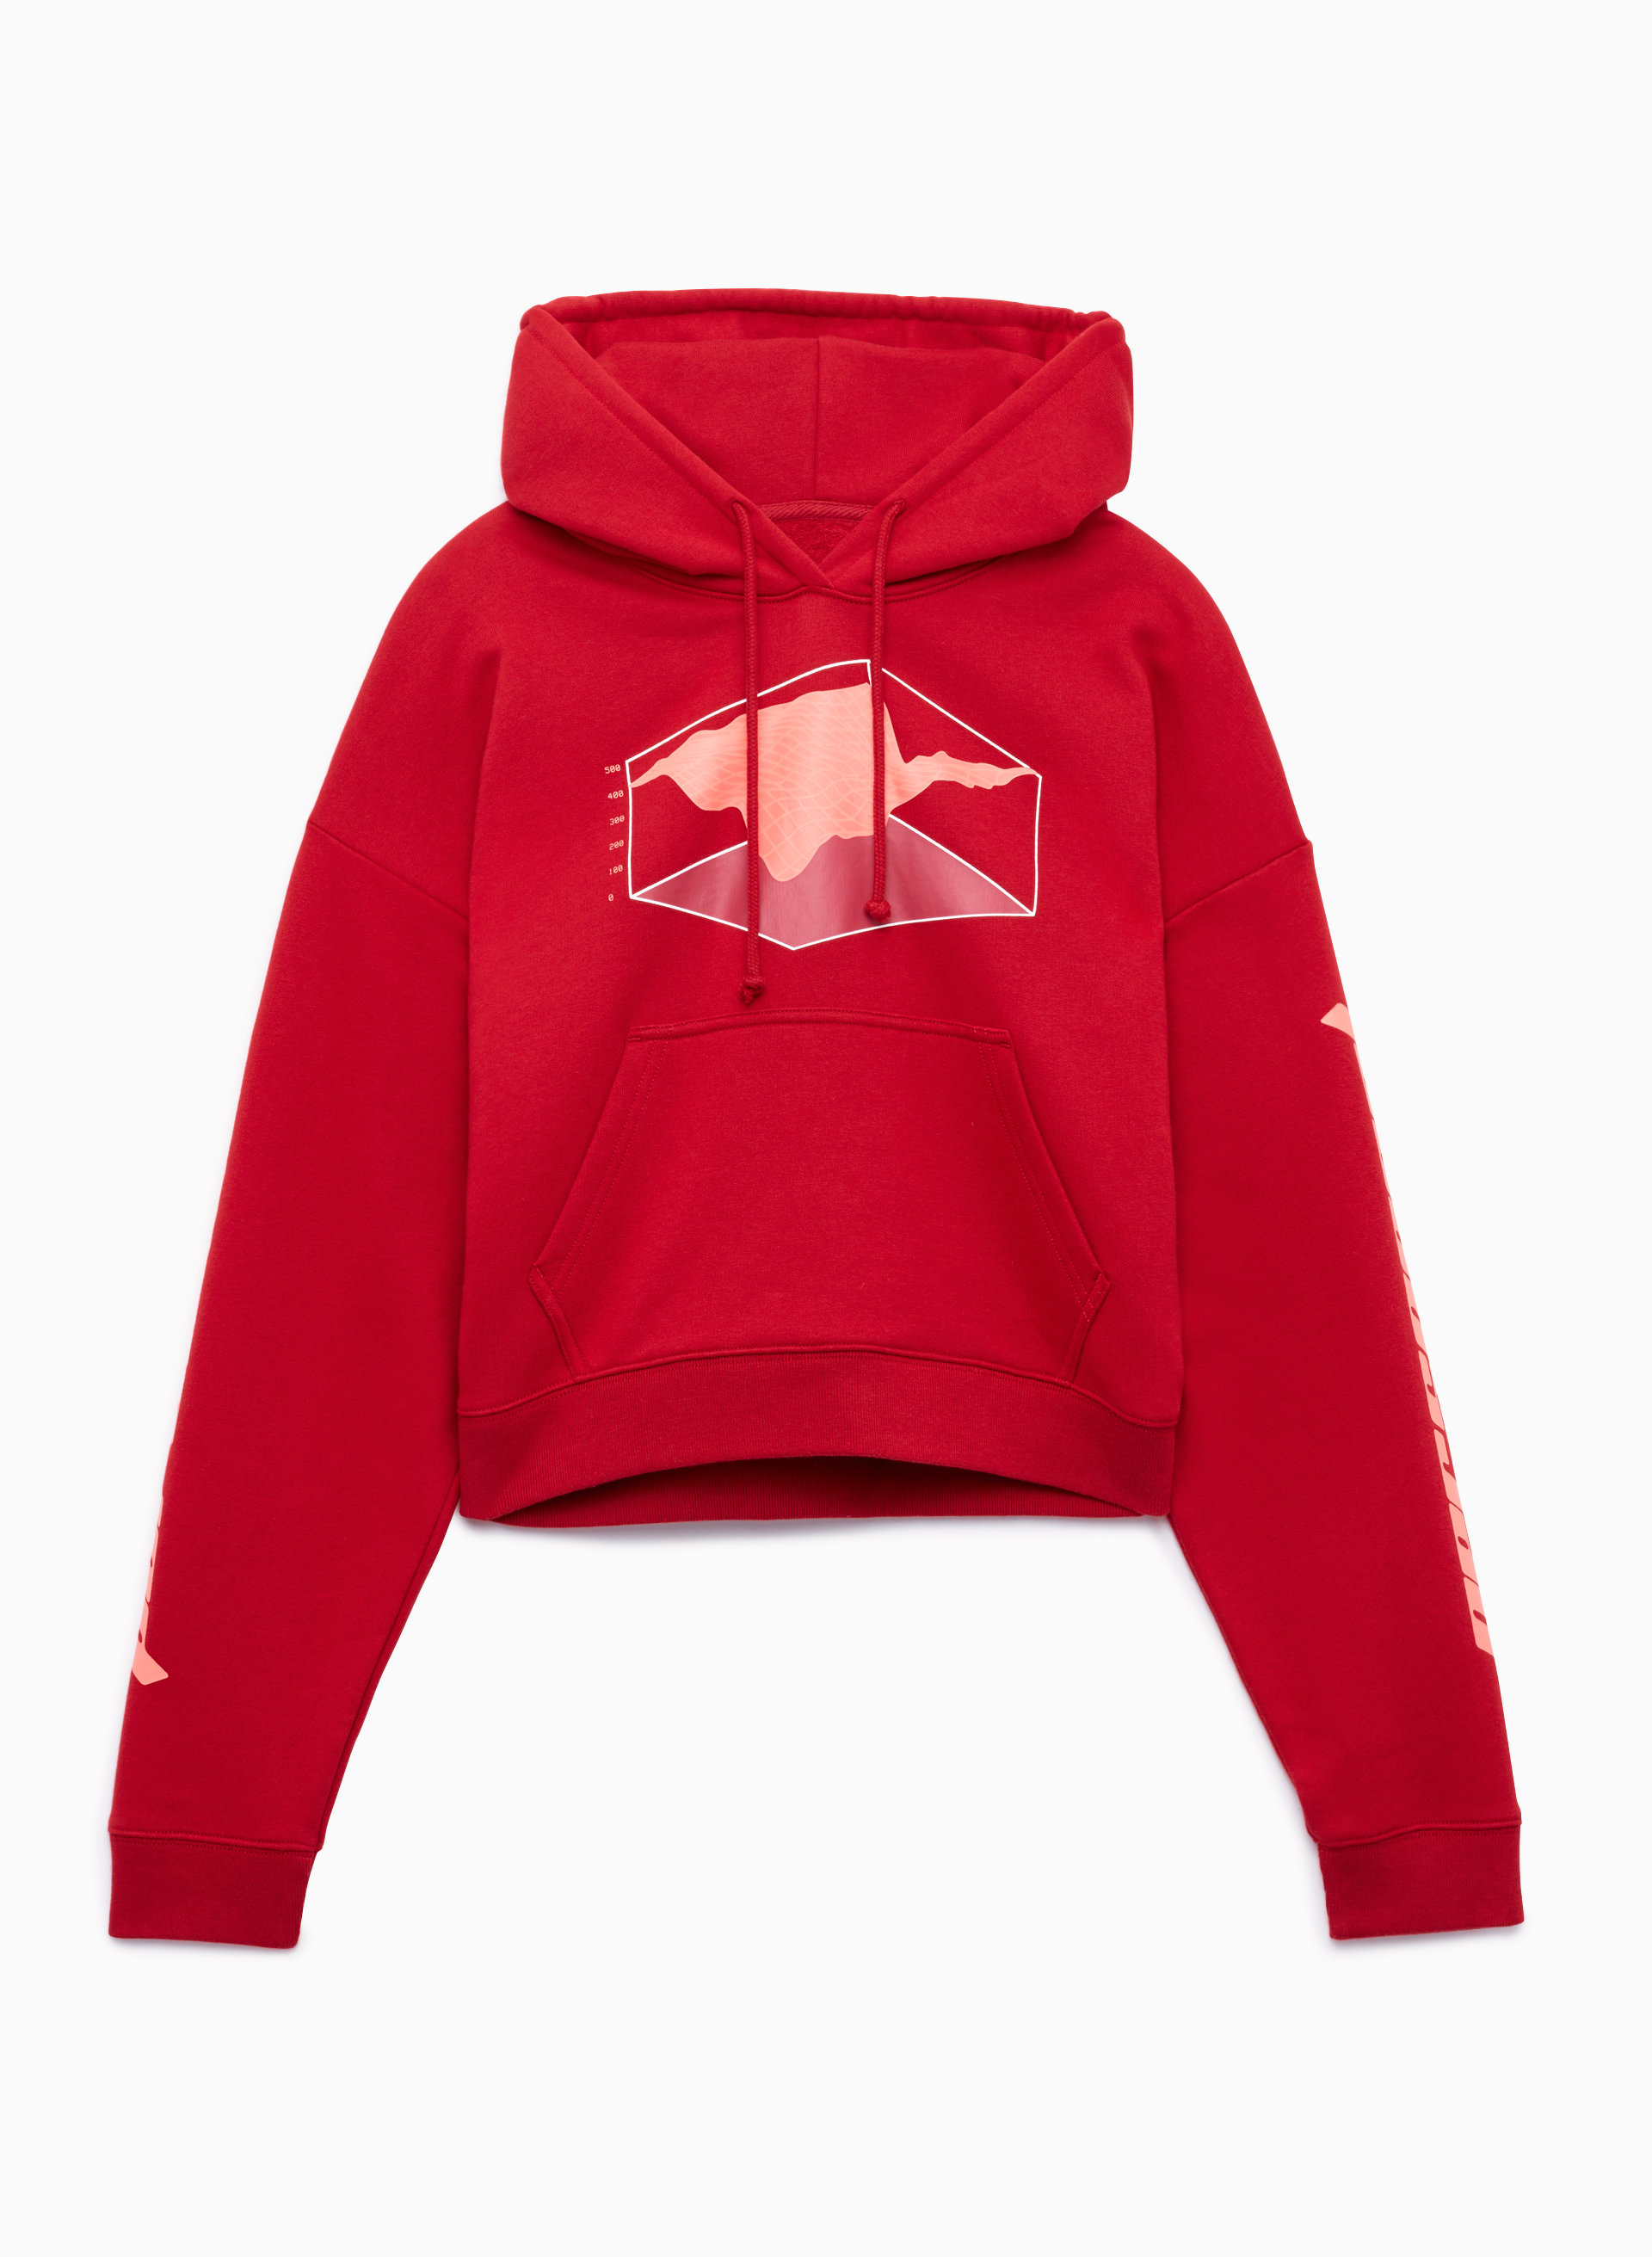 Can You Hear Us Now Map Hoodie businessontravelcom